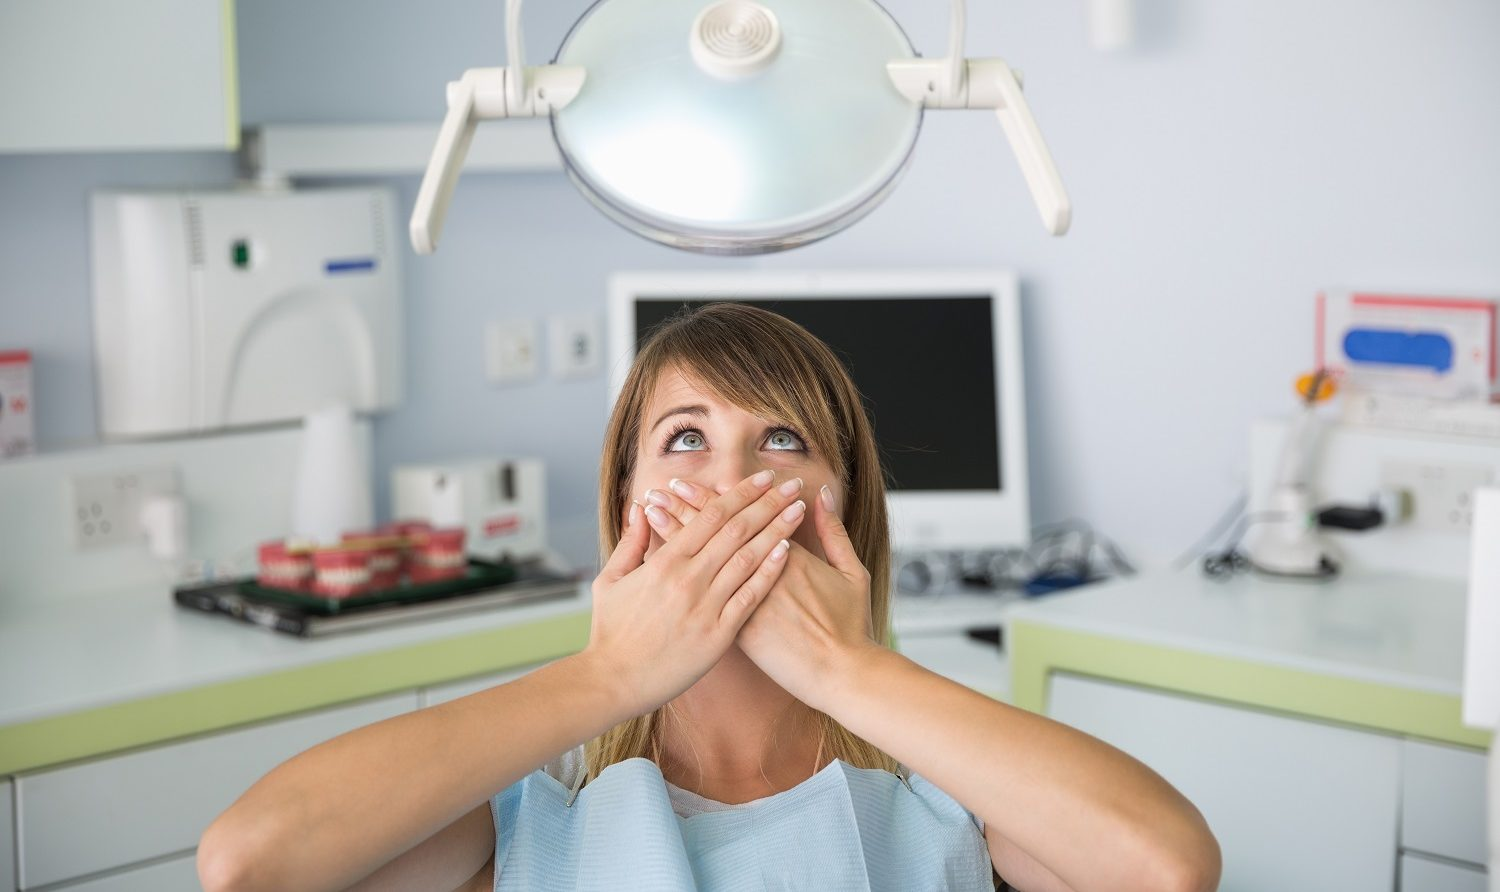 Simple Solutions to Overcome Dental Anxiety